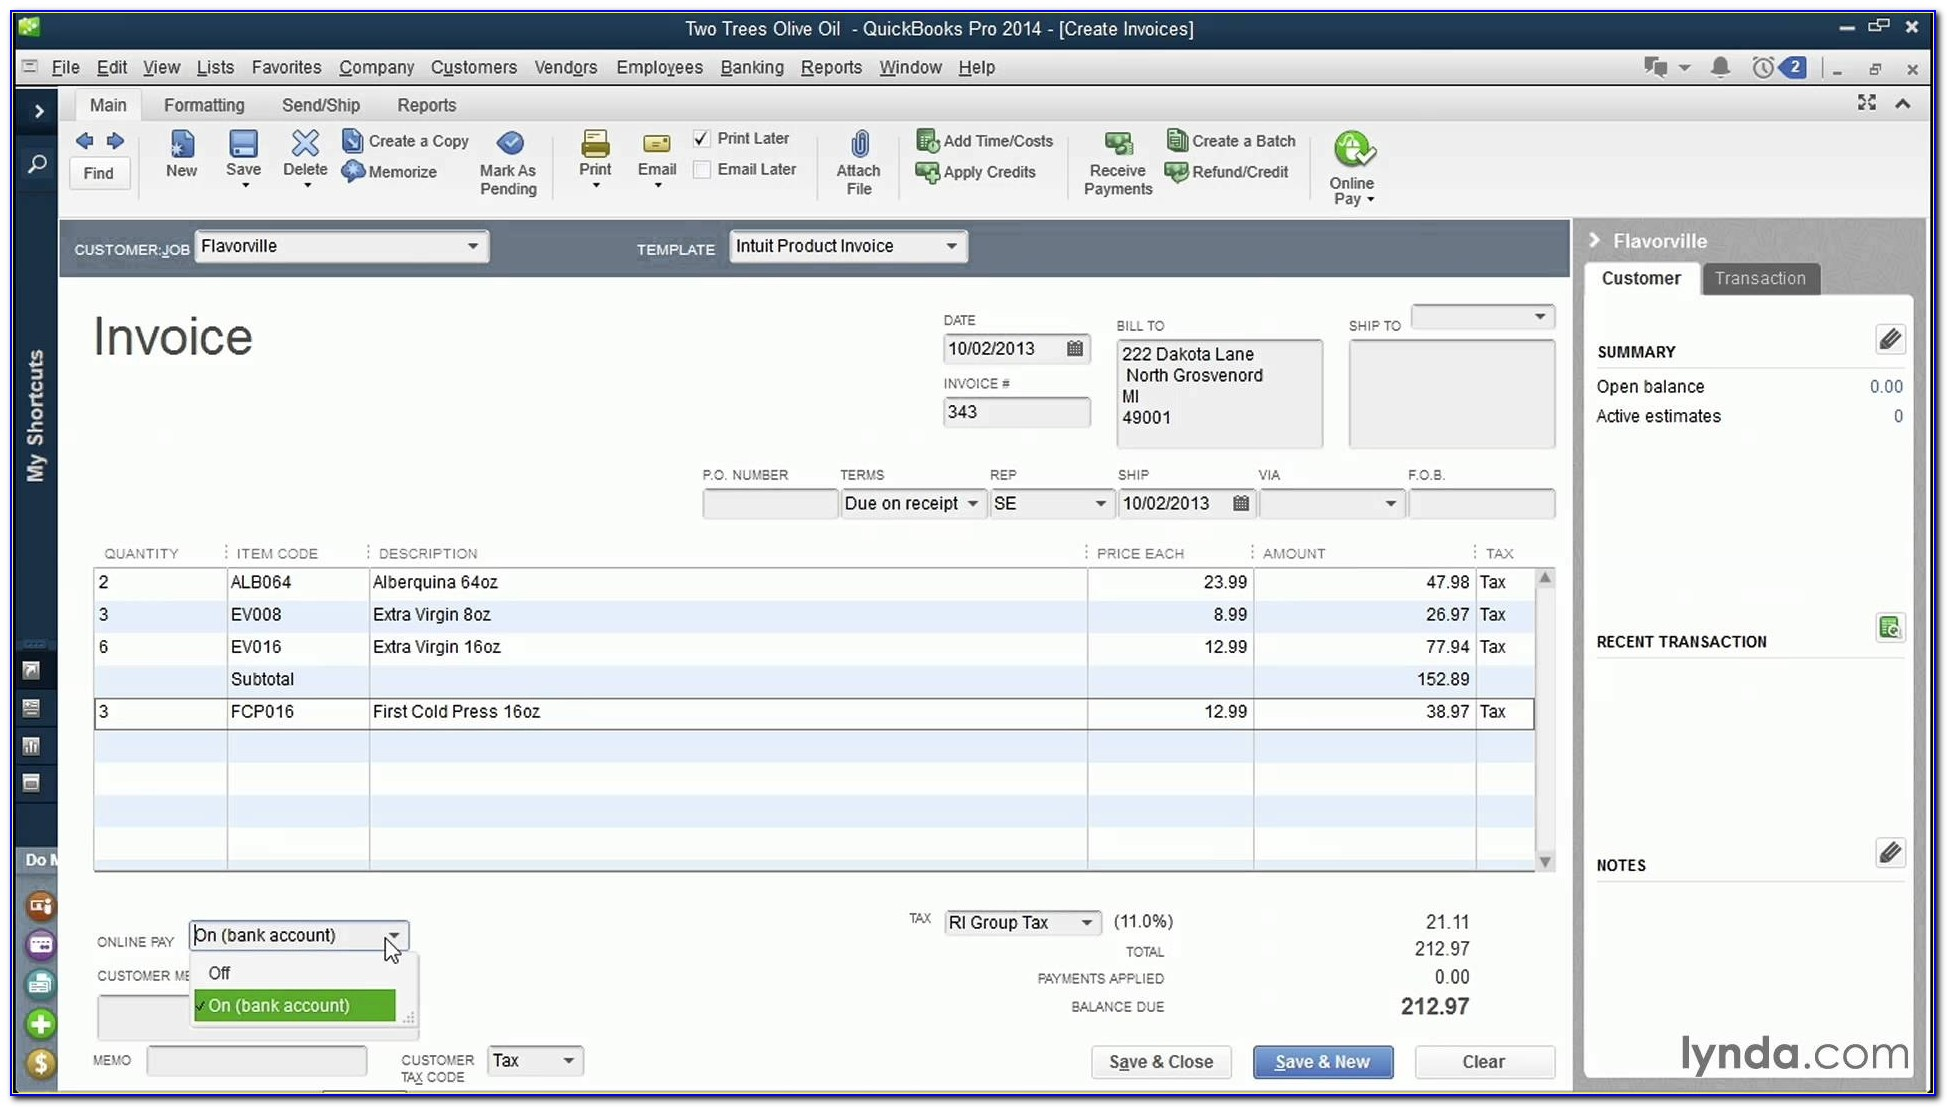 Export Invoice Template Quickbooks 2013